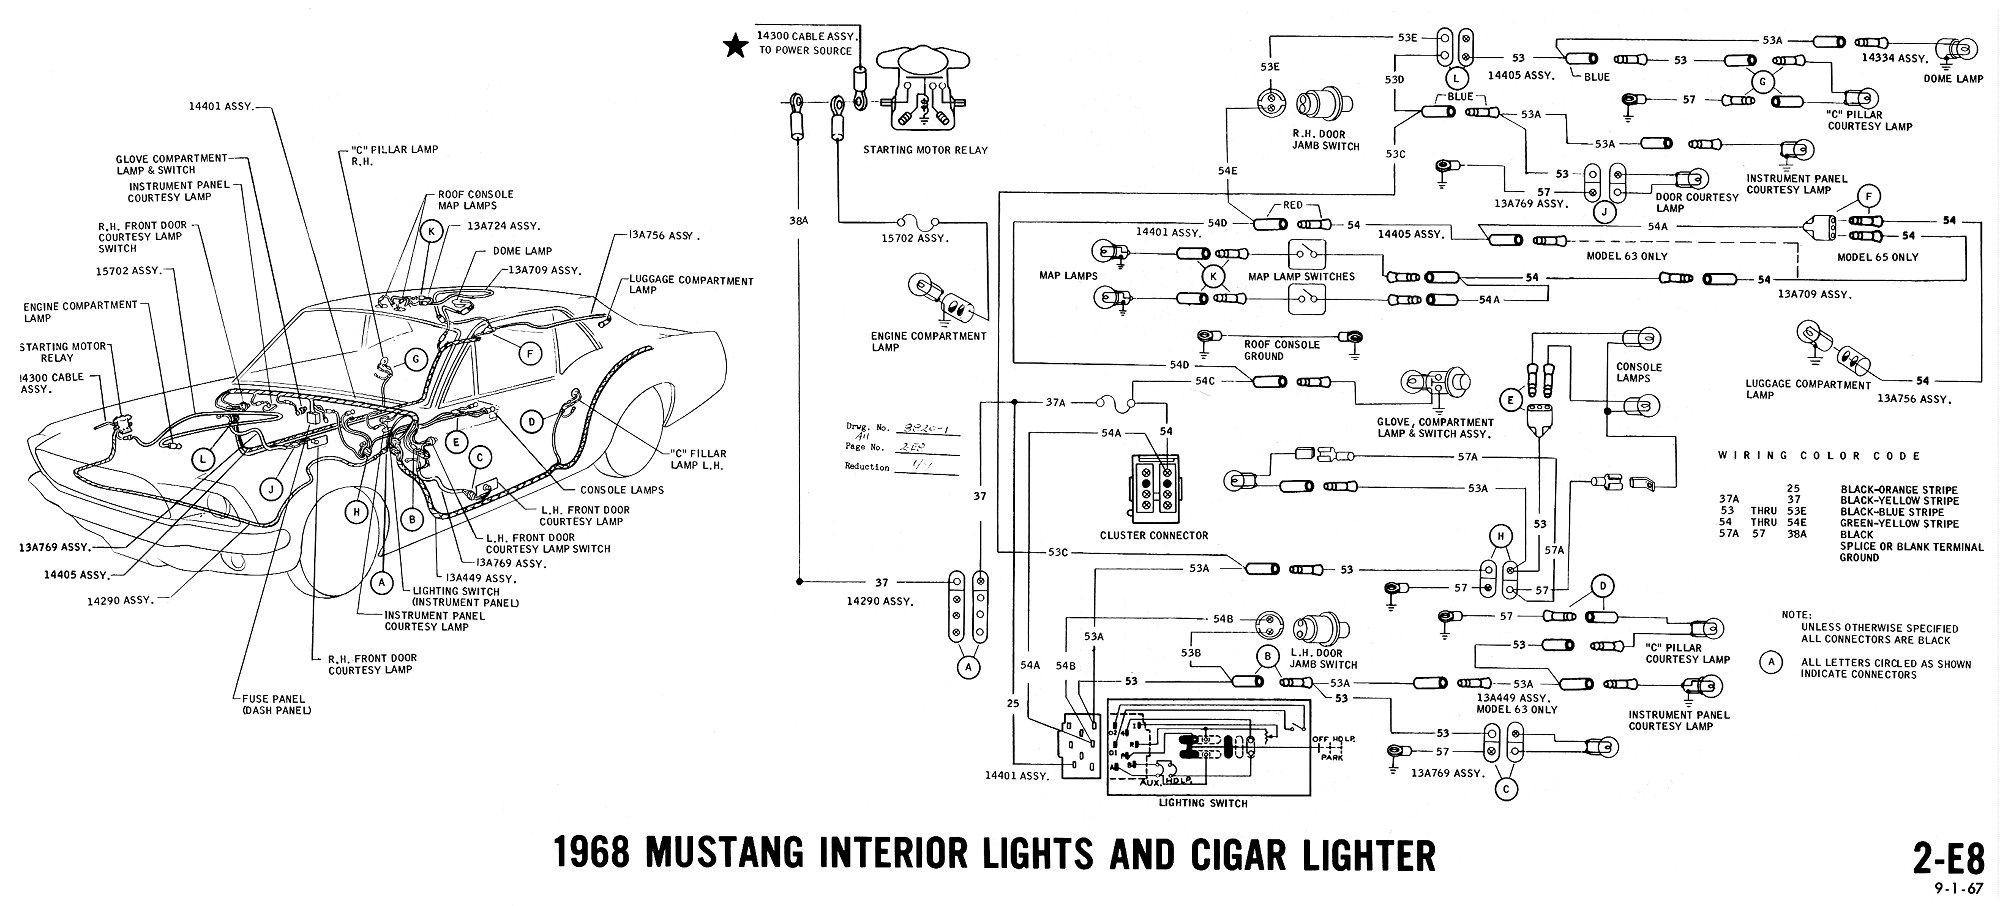 Light Switch Wiring Schematic For 1968 Mustang Diagrams Evolving Software Cigar Lighter Interior Lights